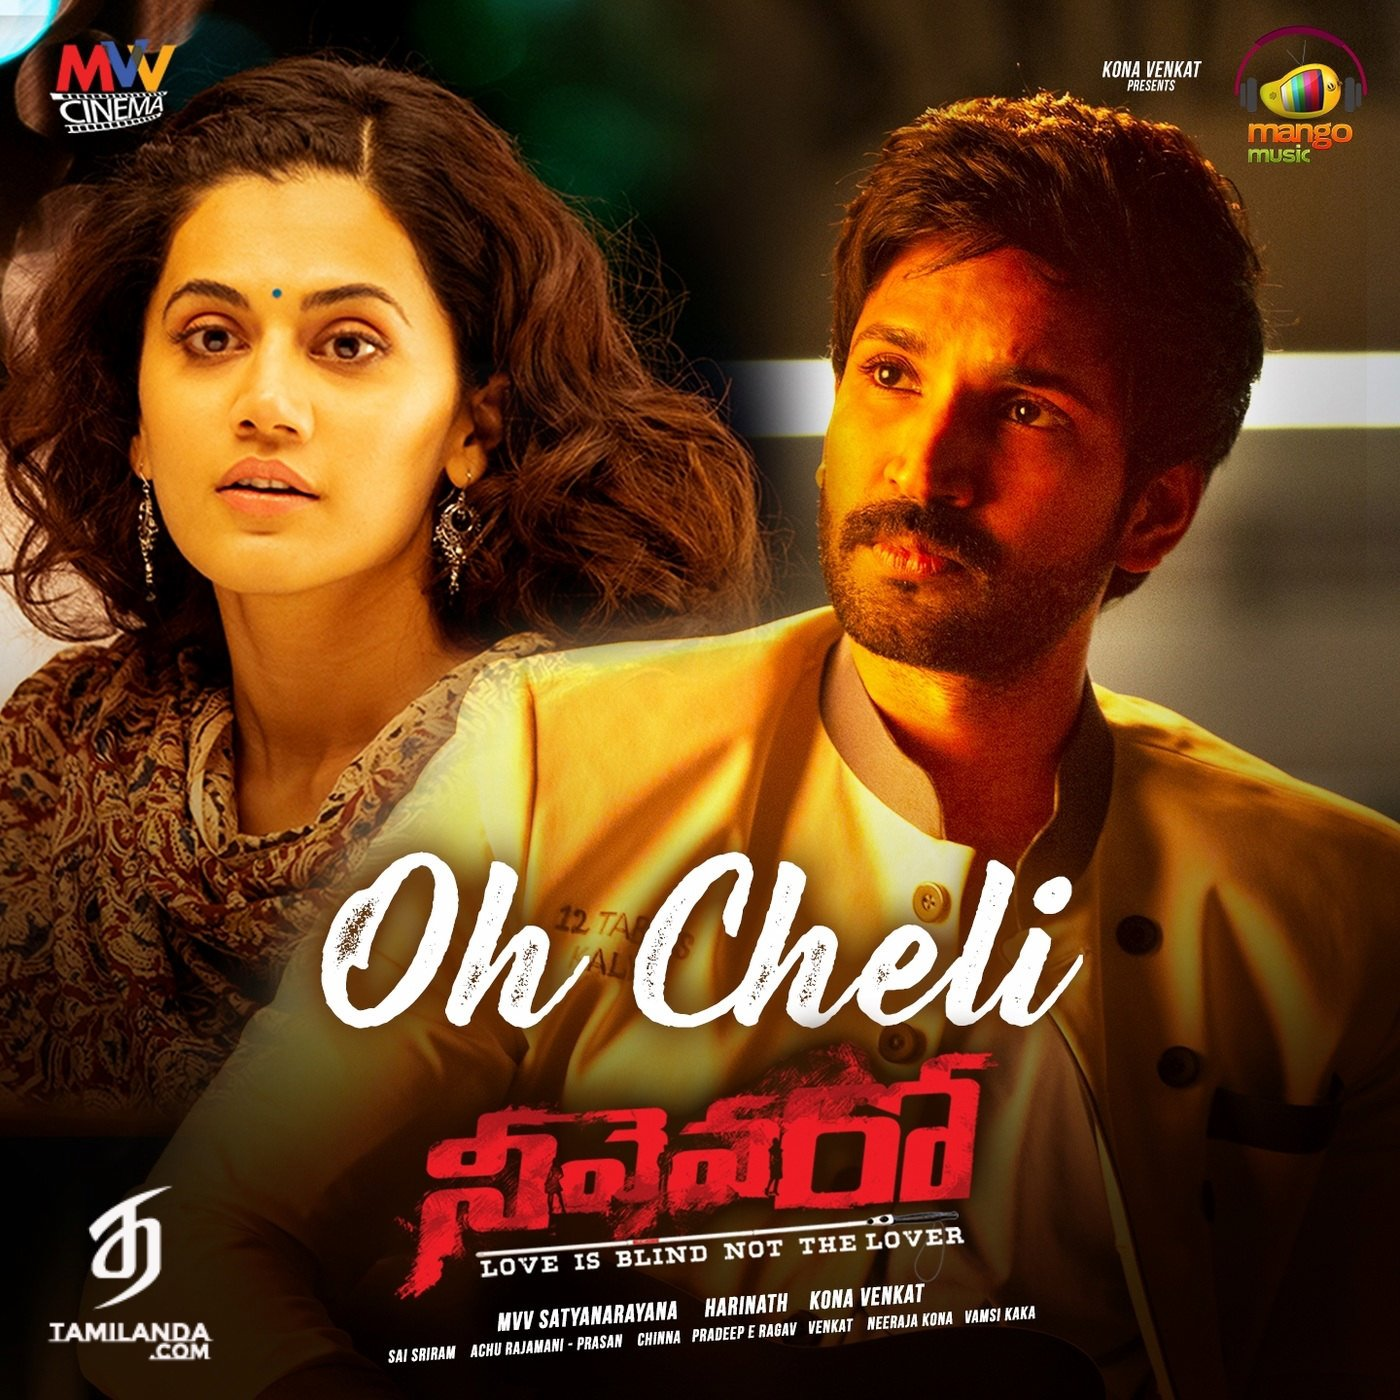 Oh Cheli (From Neevevaro) – Single FLAC Song